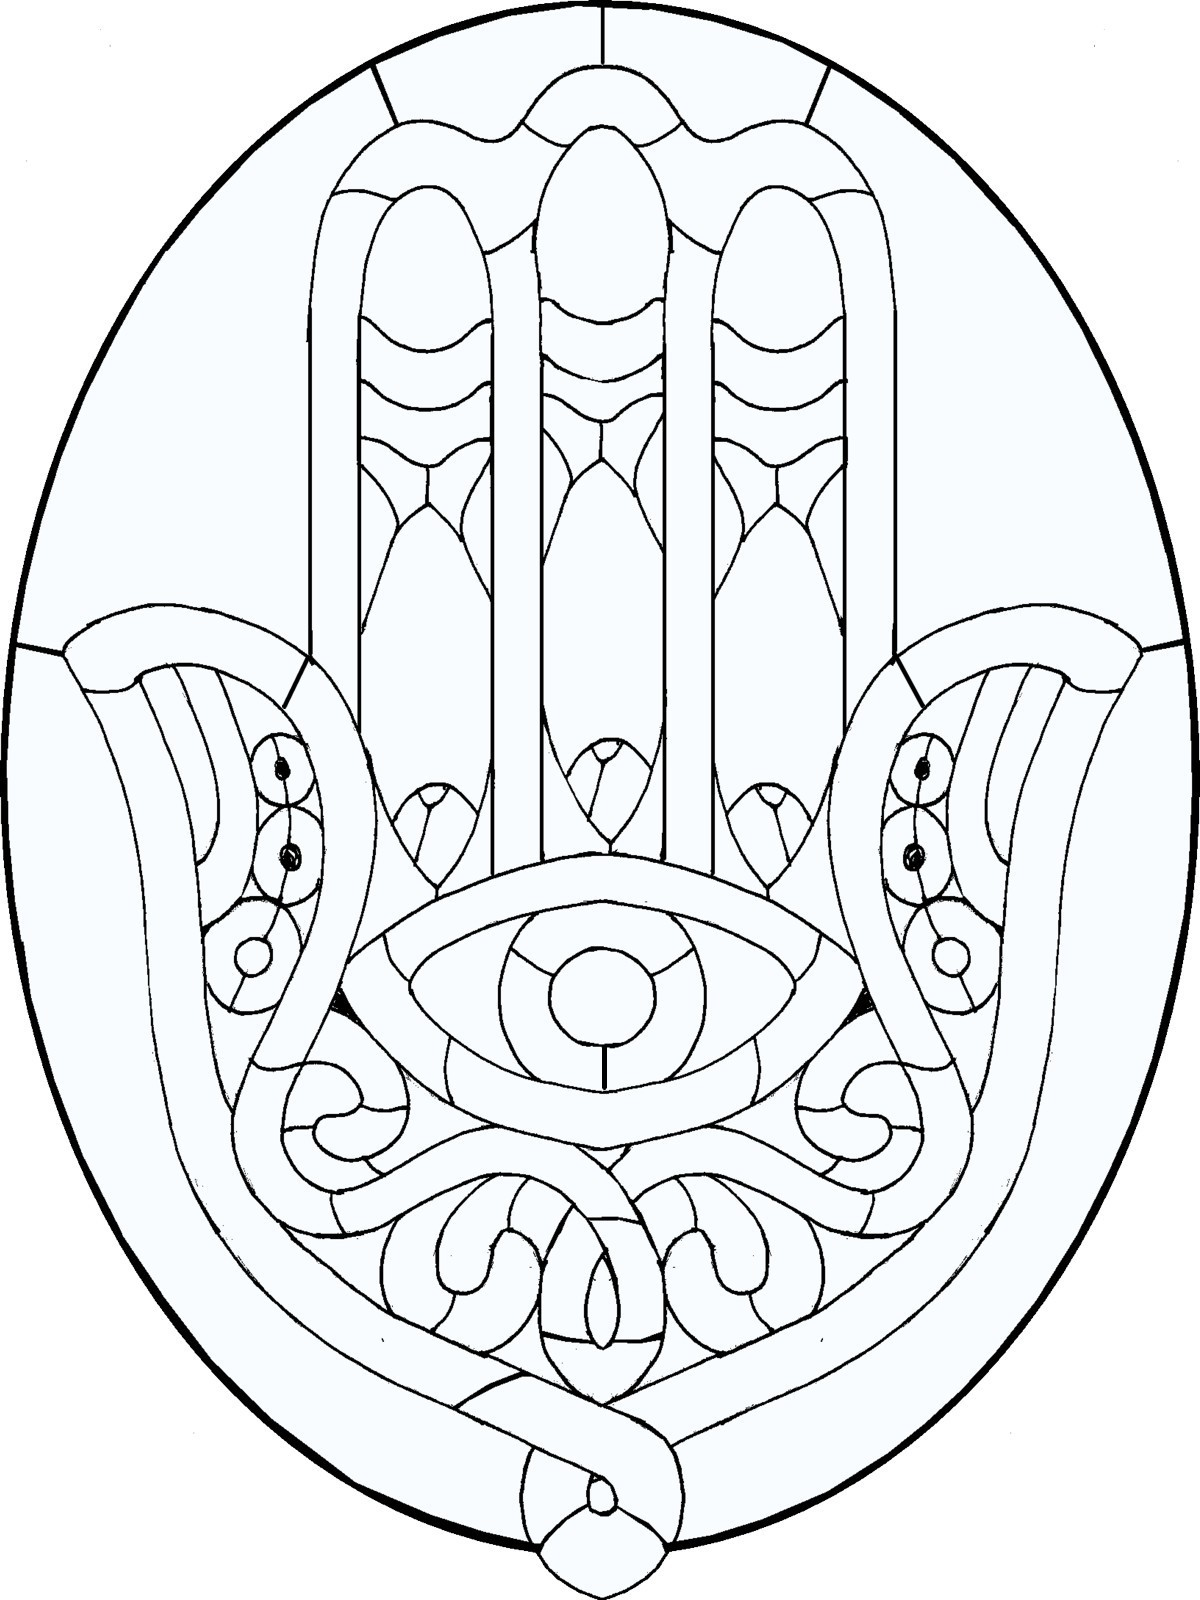 hamsa coloring pages - photo#17